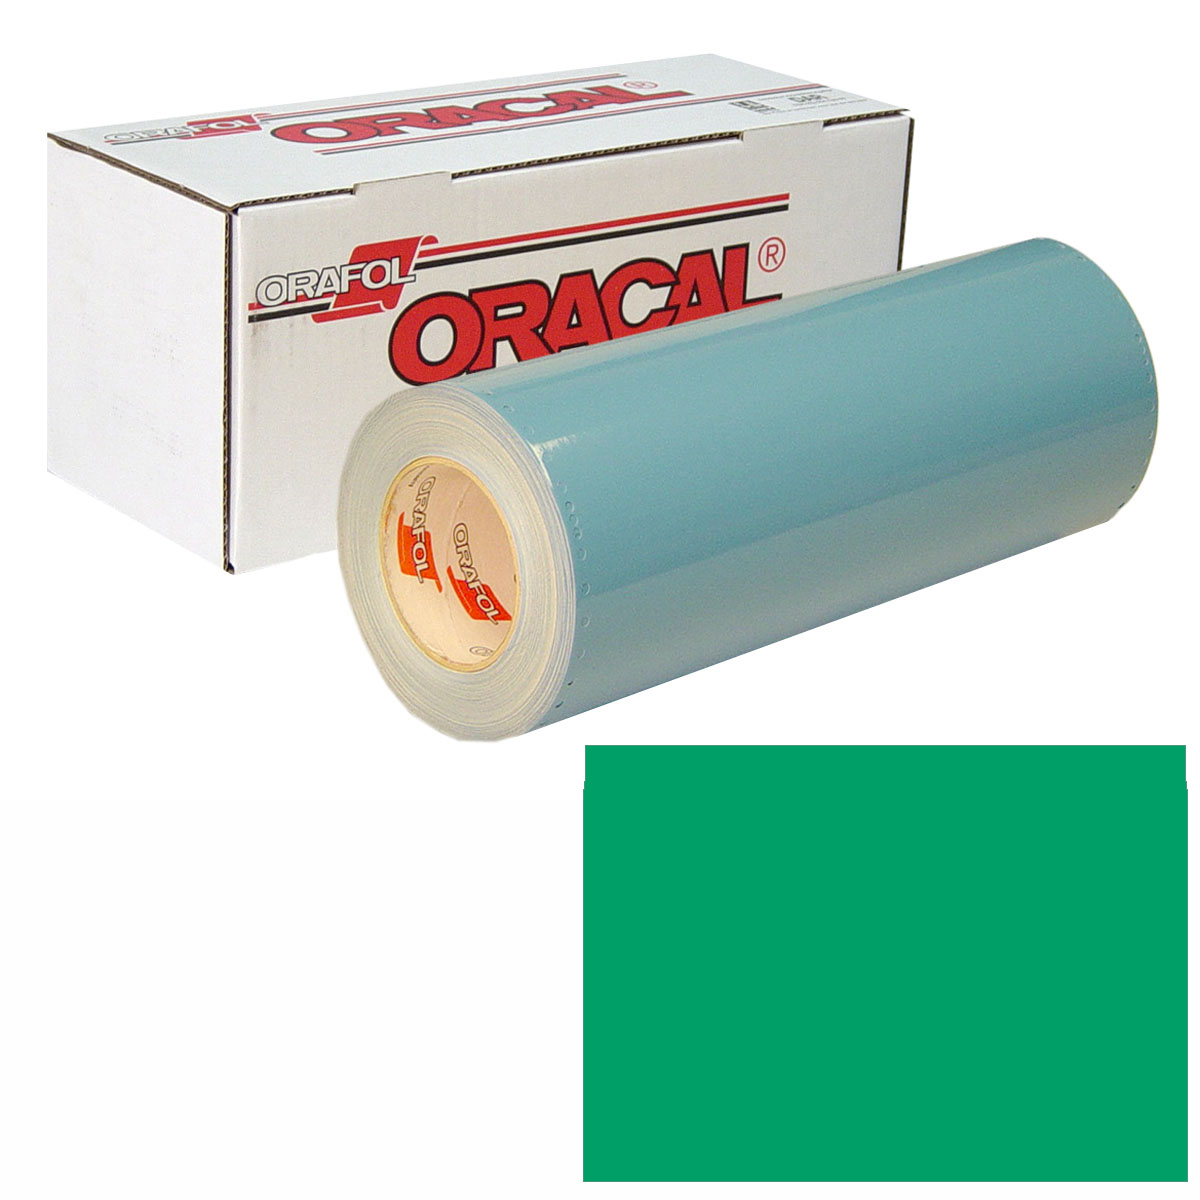 ORACAL 751 30in X 10yd 068 Grass Green